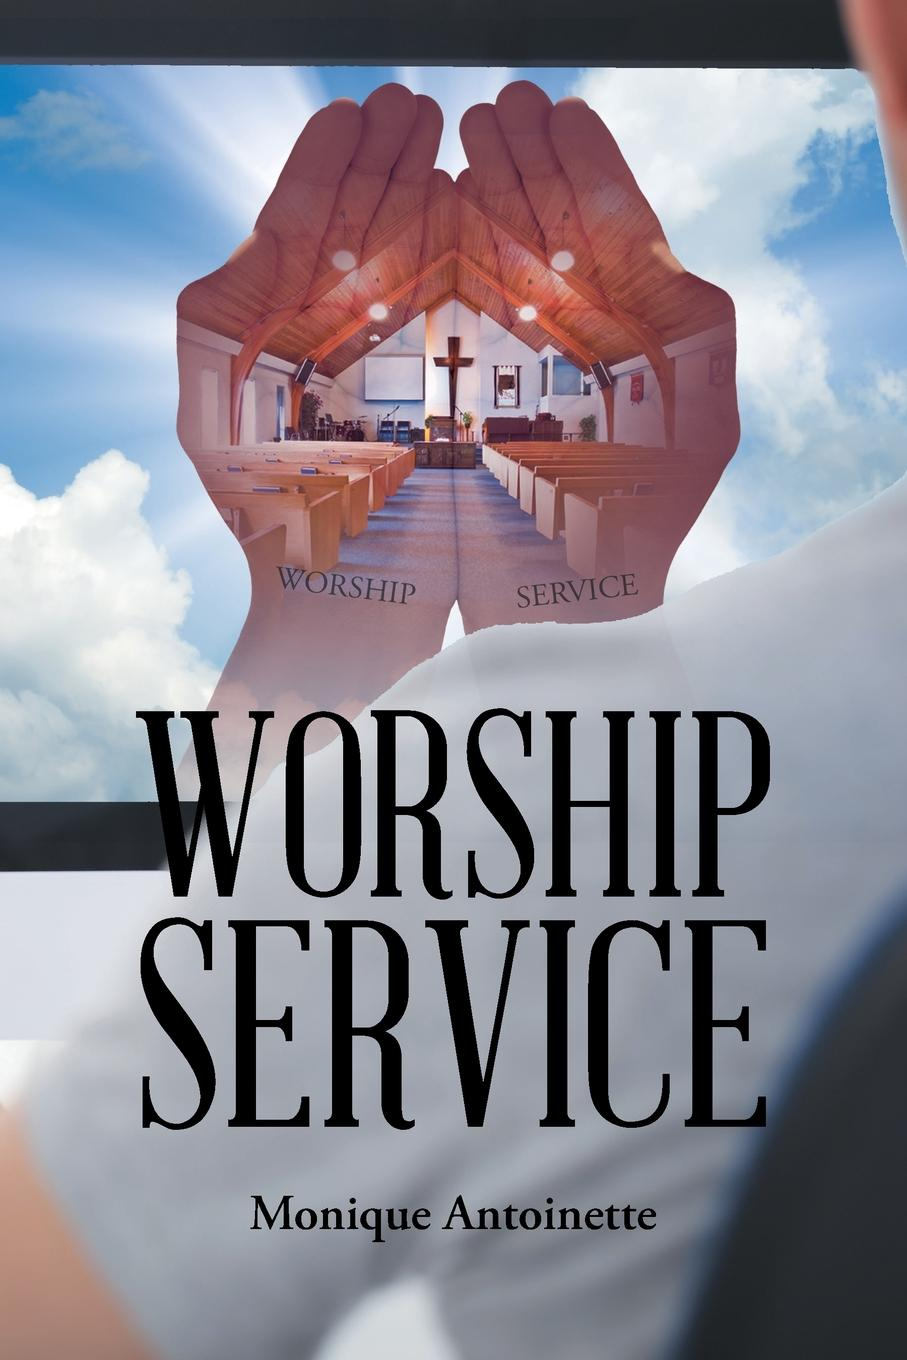 Monique Antoinette Worship Service пижама you and me